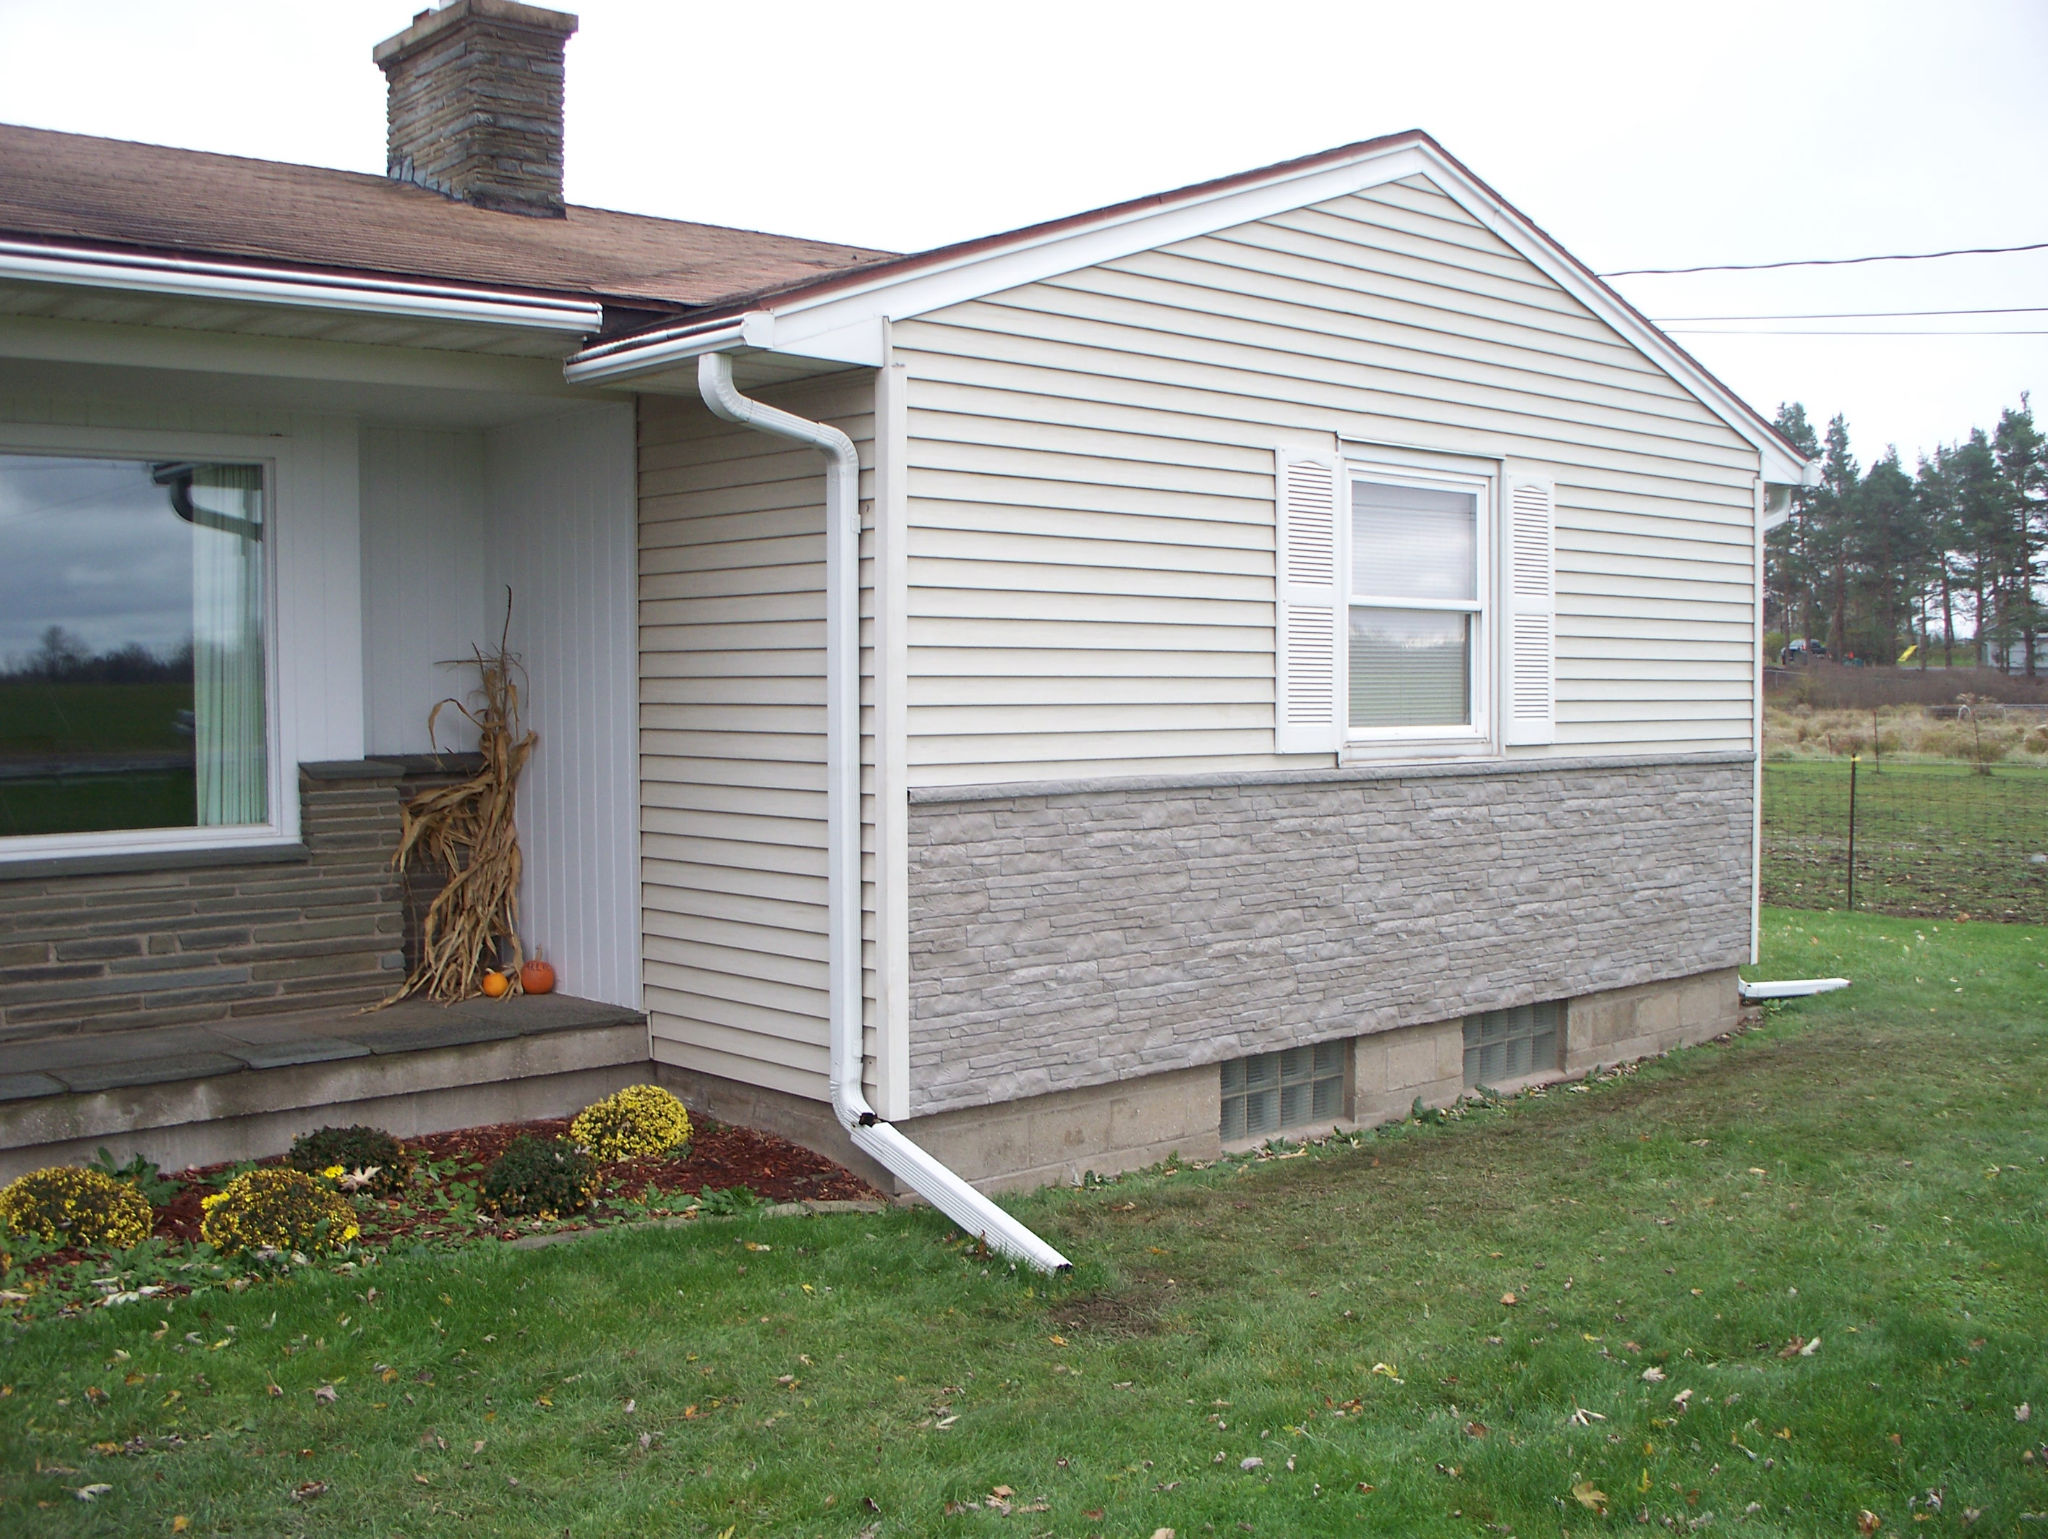 stone veneer panels matched with white wall for wall exterior design ideas